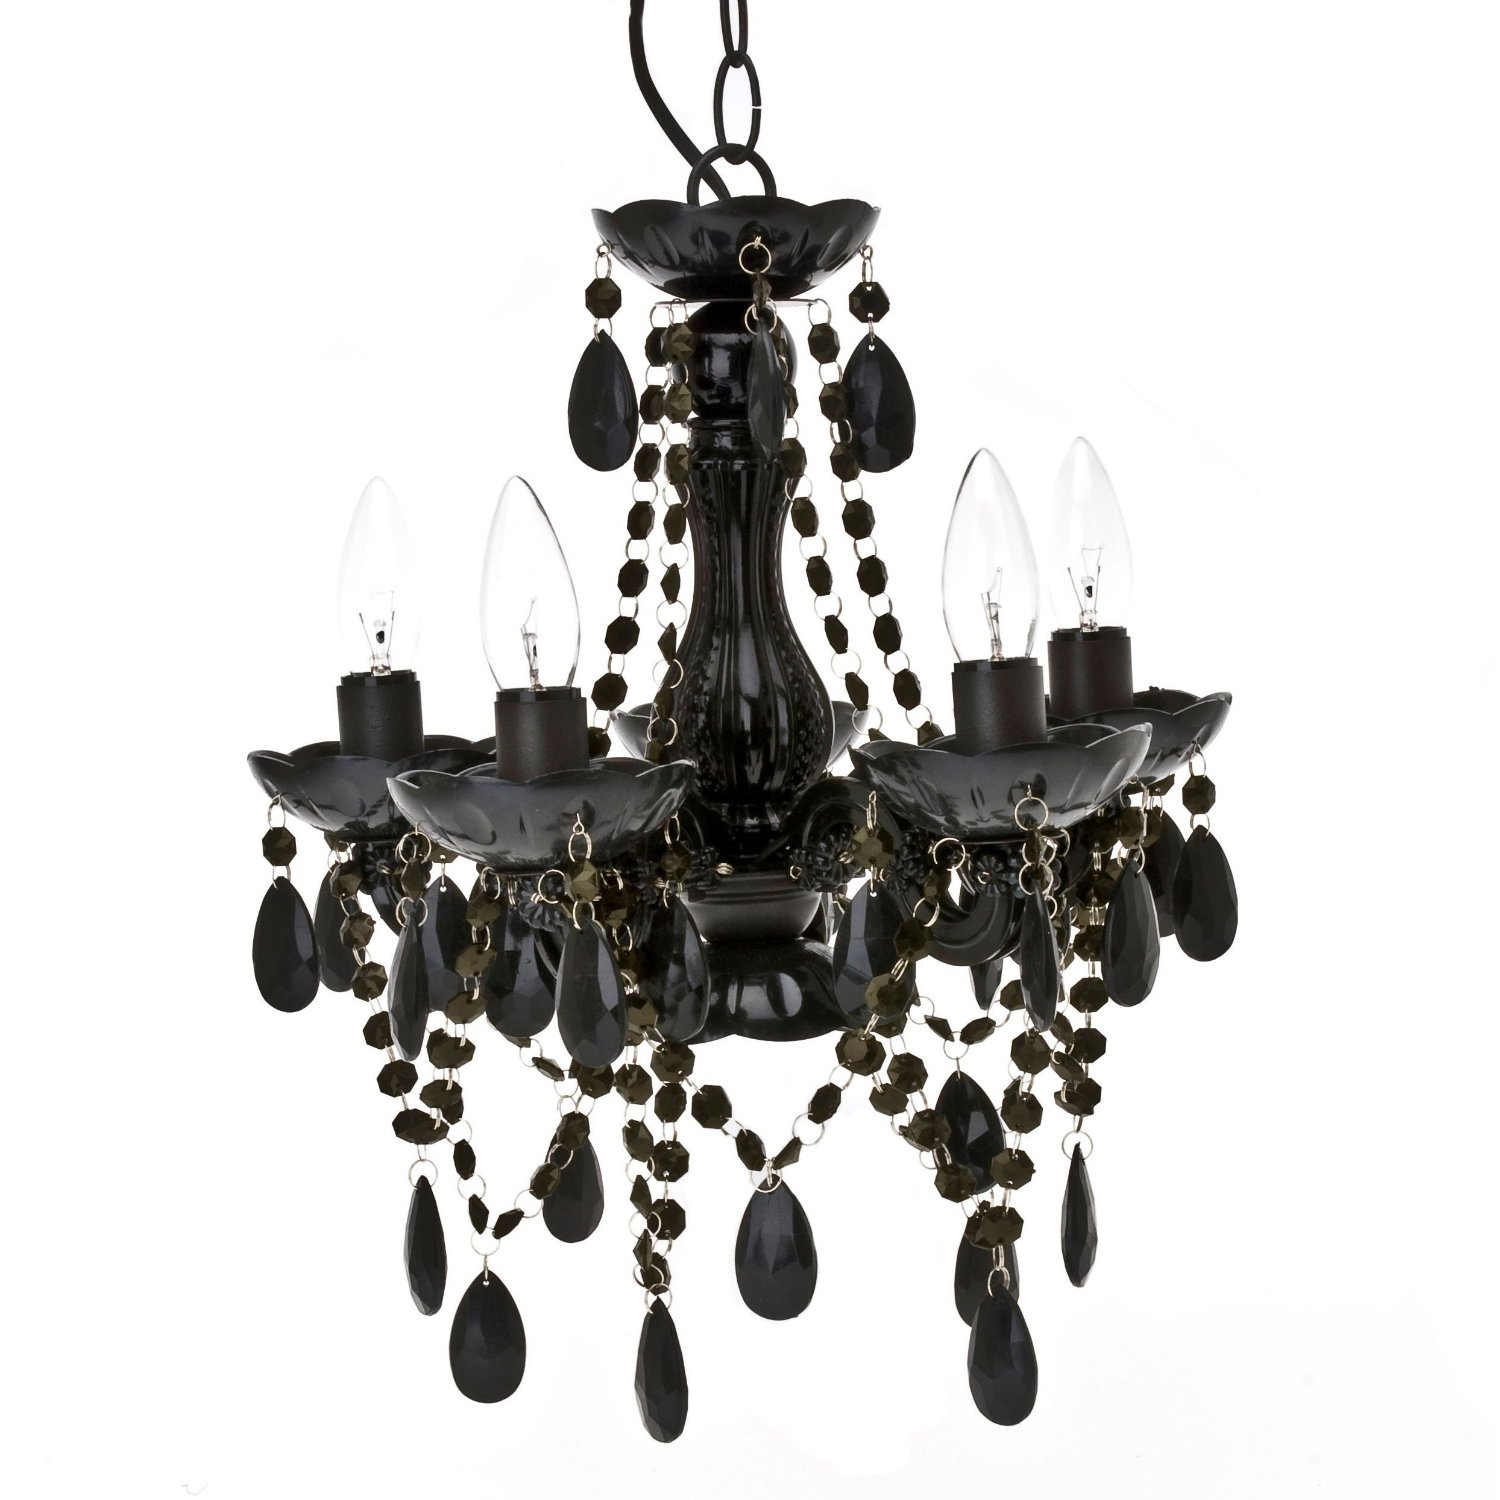 Amazing Of Black Chandelier Lamp Black Chandelier Crystals Paris With Regard To Contemporary Black Chandelier (#2 of 12)